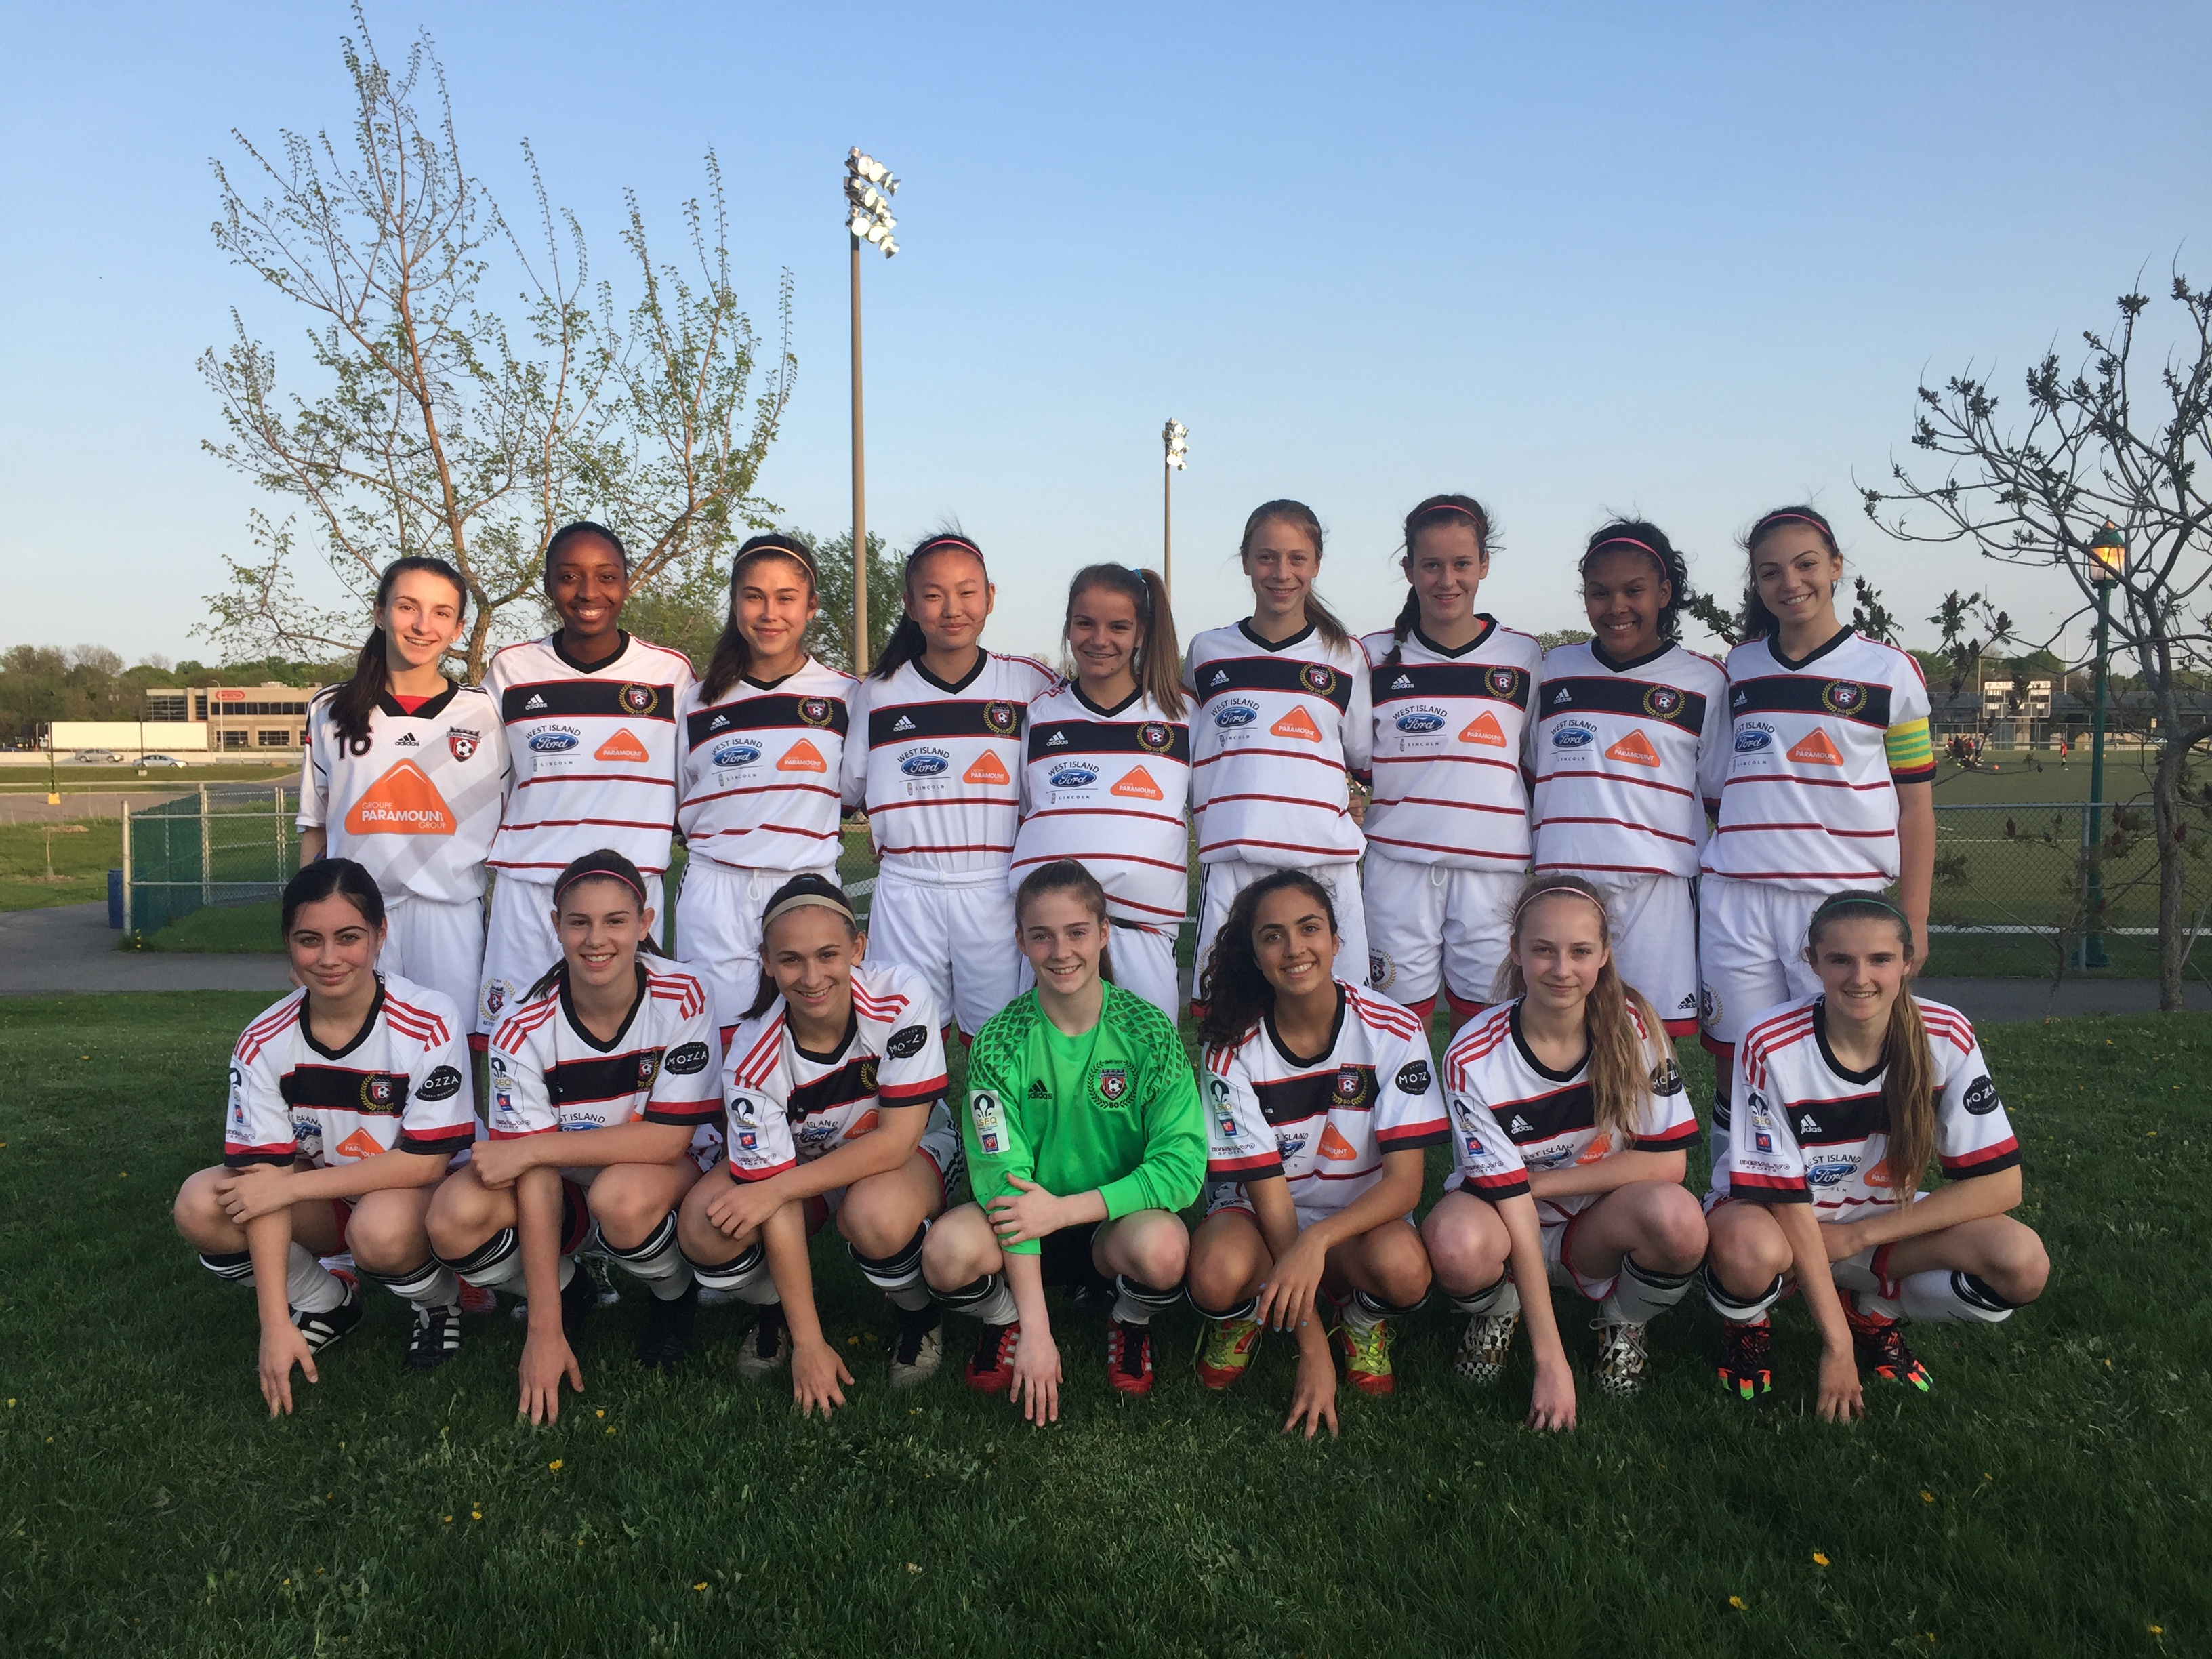 SMT-ASSY Supports The U16AAA Girls Lakeshore Team